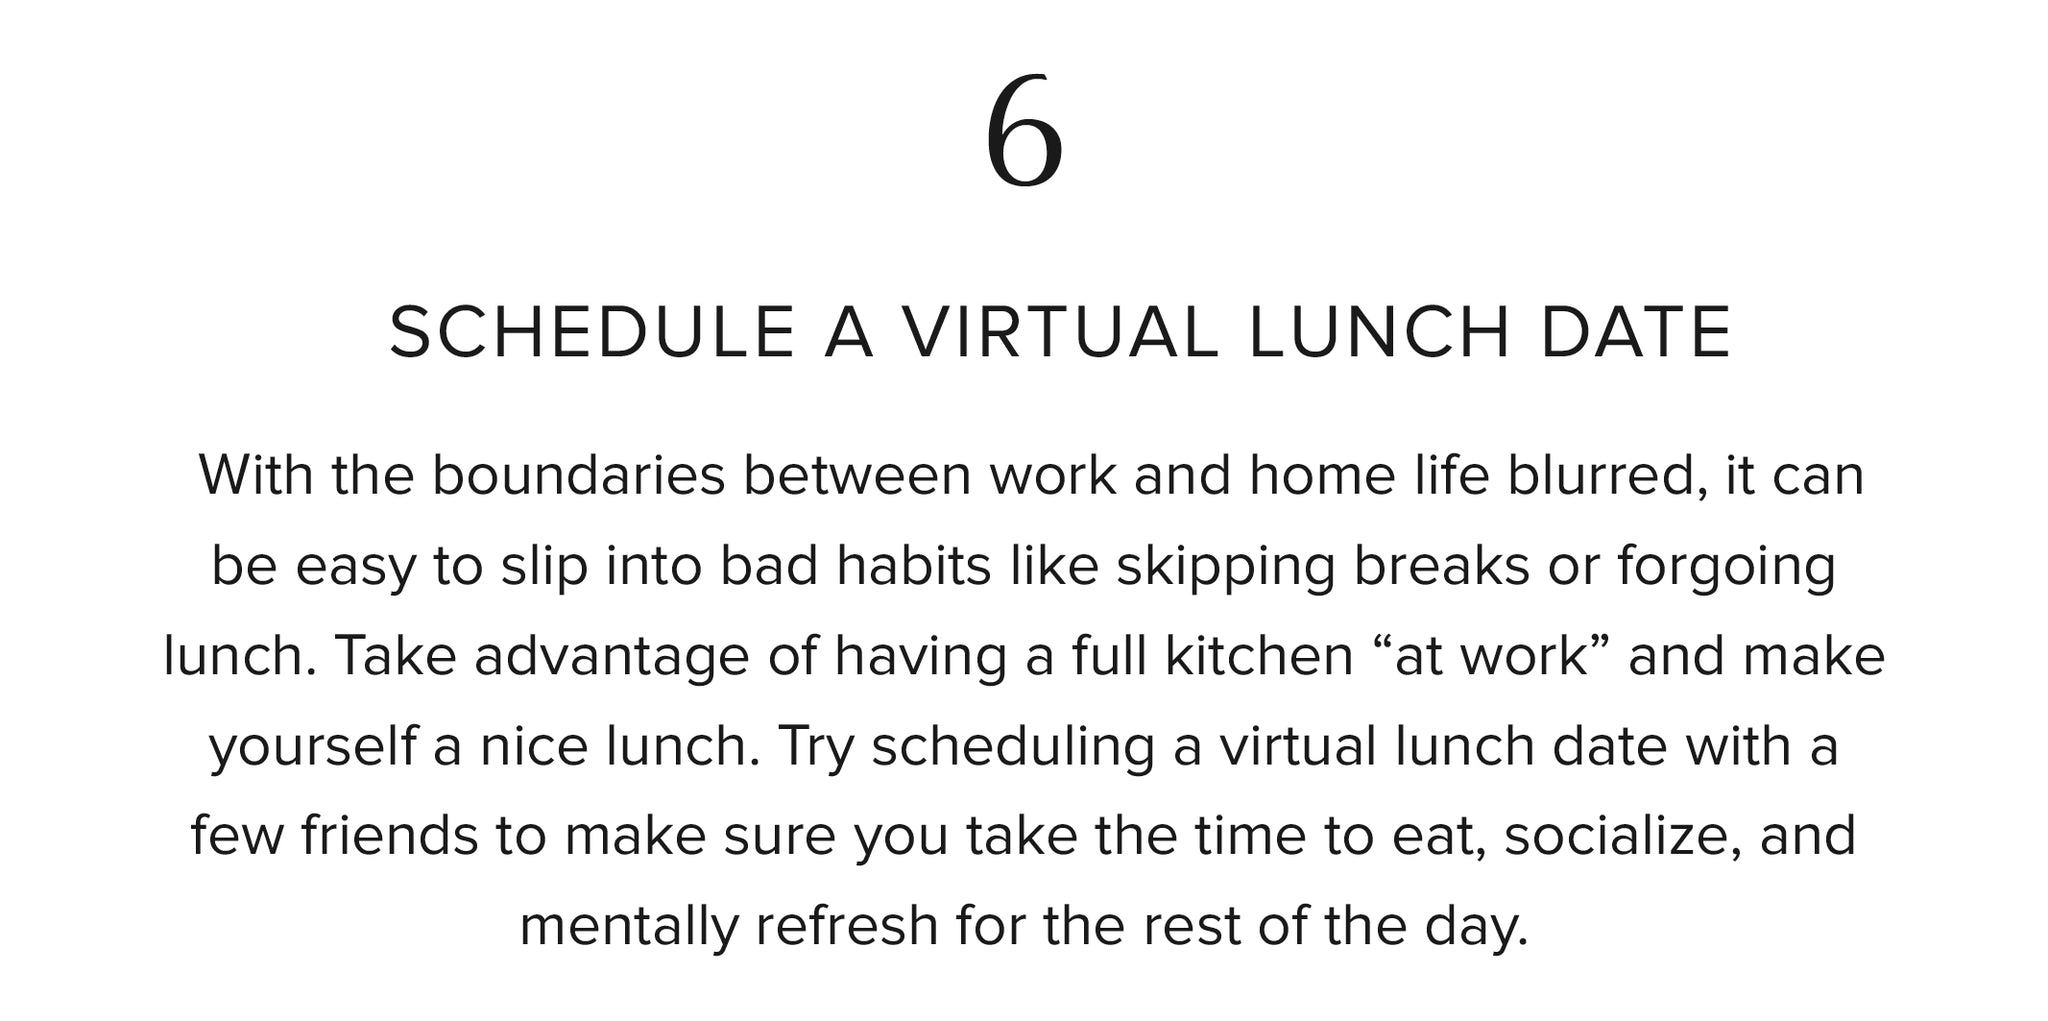 6. Schedule a virtual lunch date